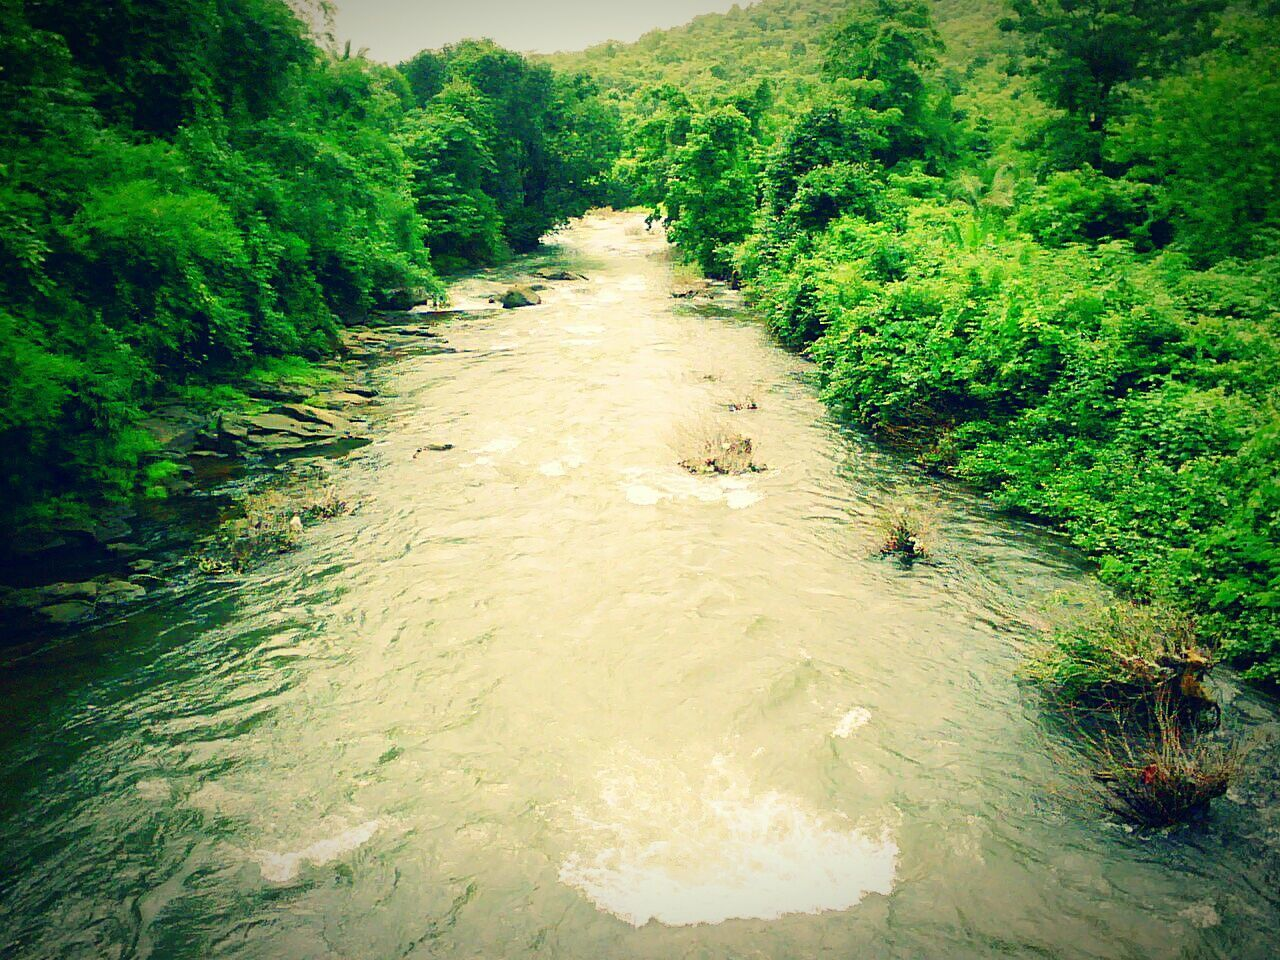 Nature Photography Nature Scenery River River View MyClick Smartphonephotography Scenery Shot 1.2 Megapixel